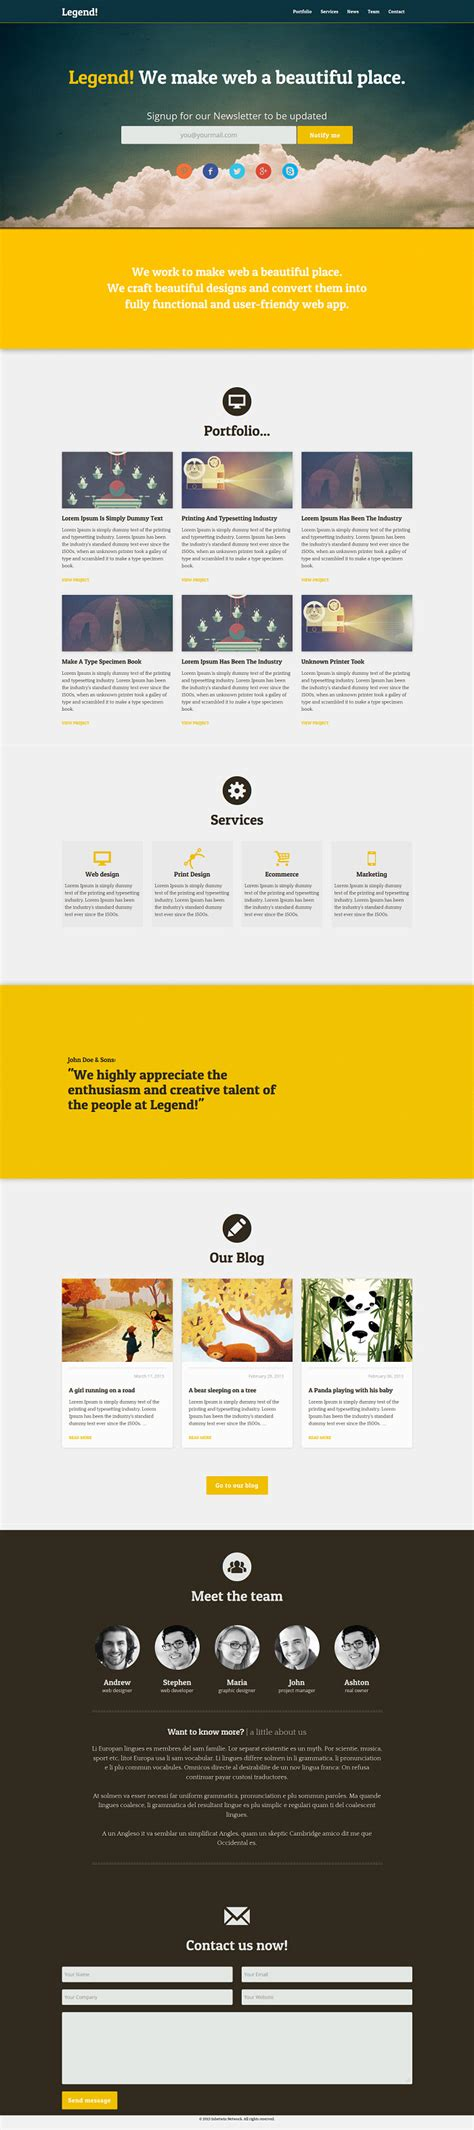 Responsive Psd Web Templates 25 Free Templates Psd Files Design Blog Free Website Design Templates